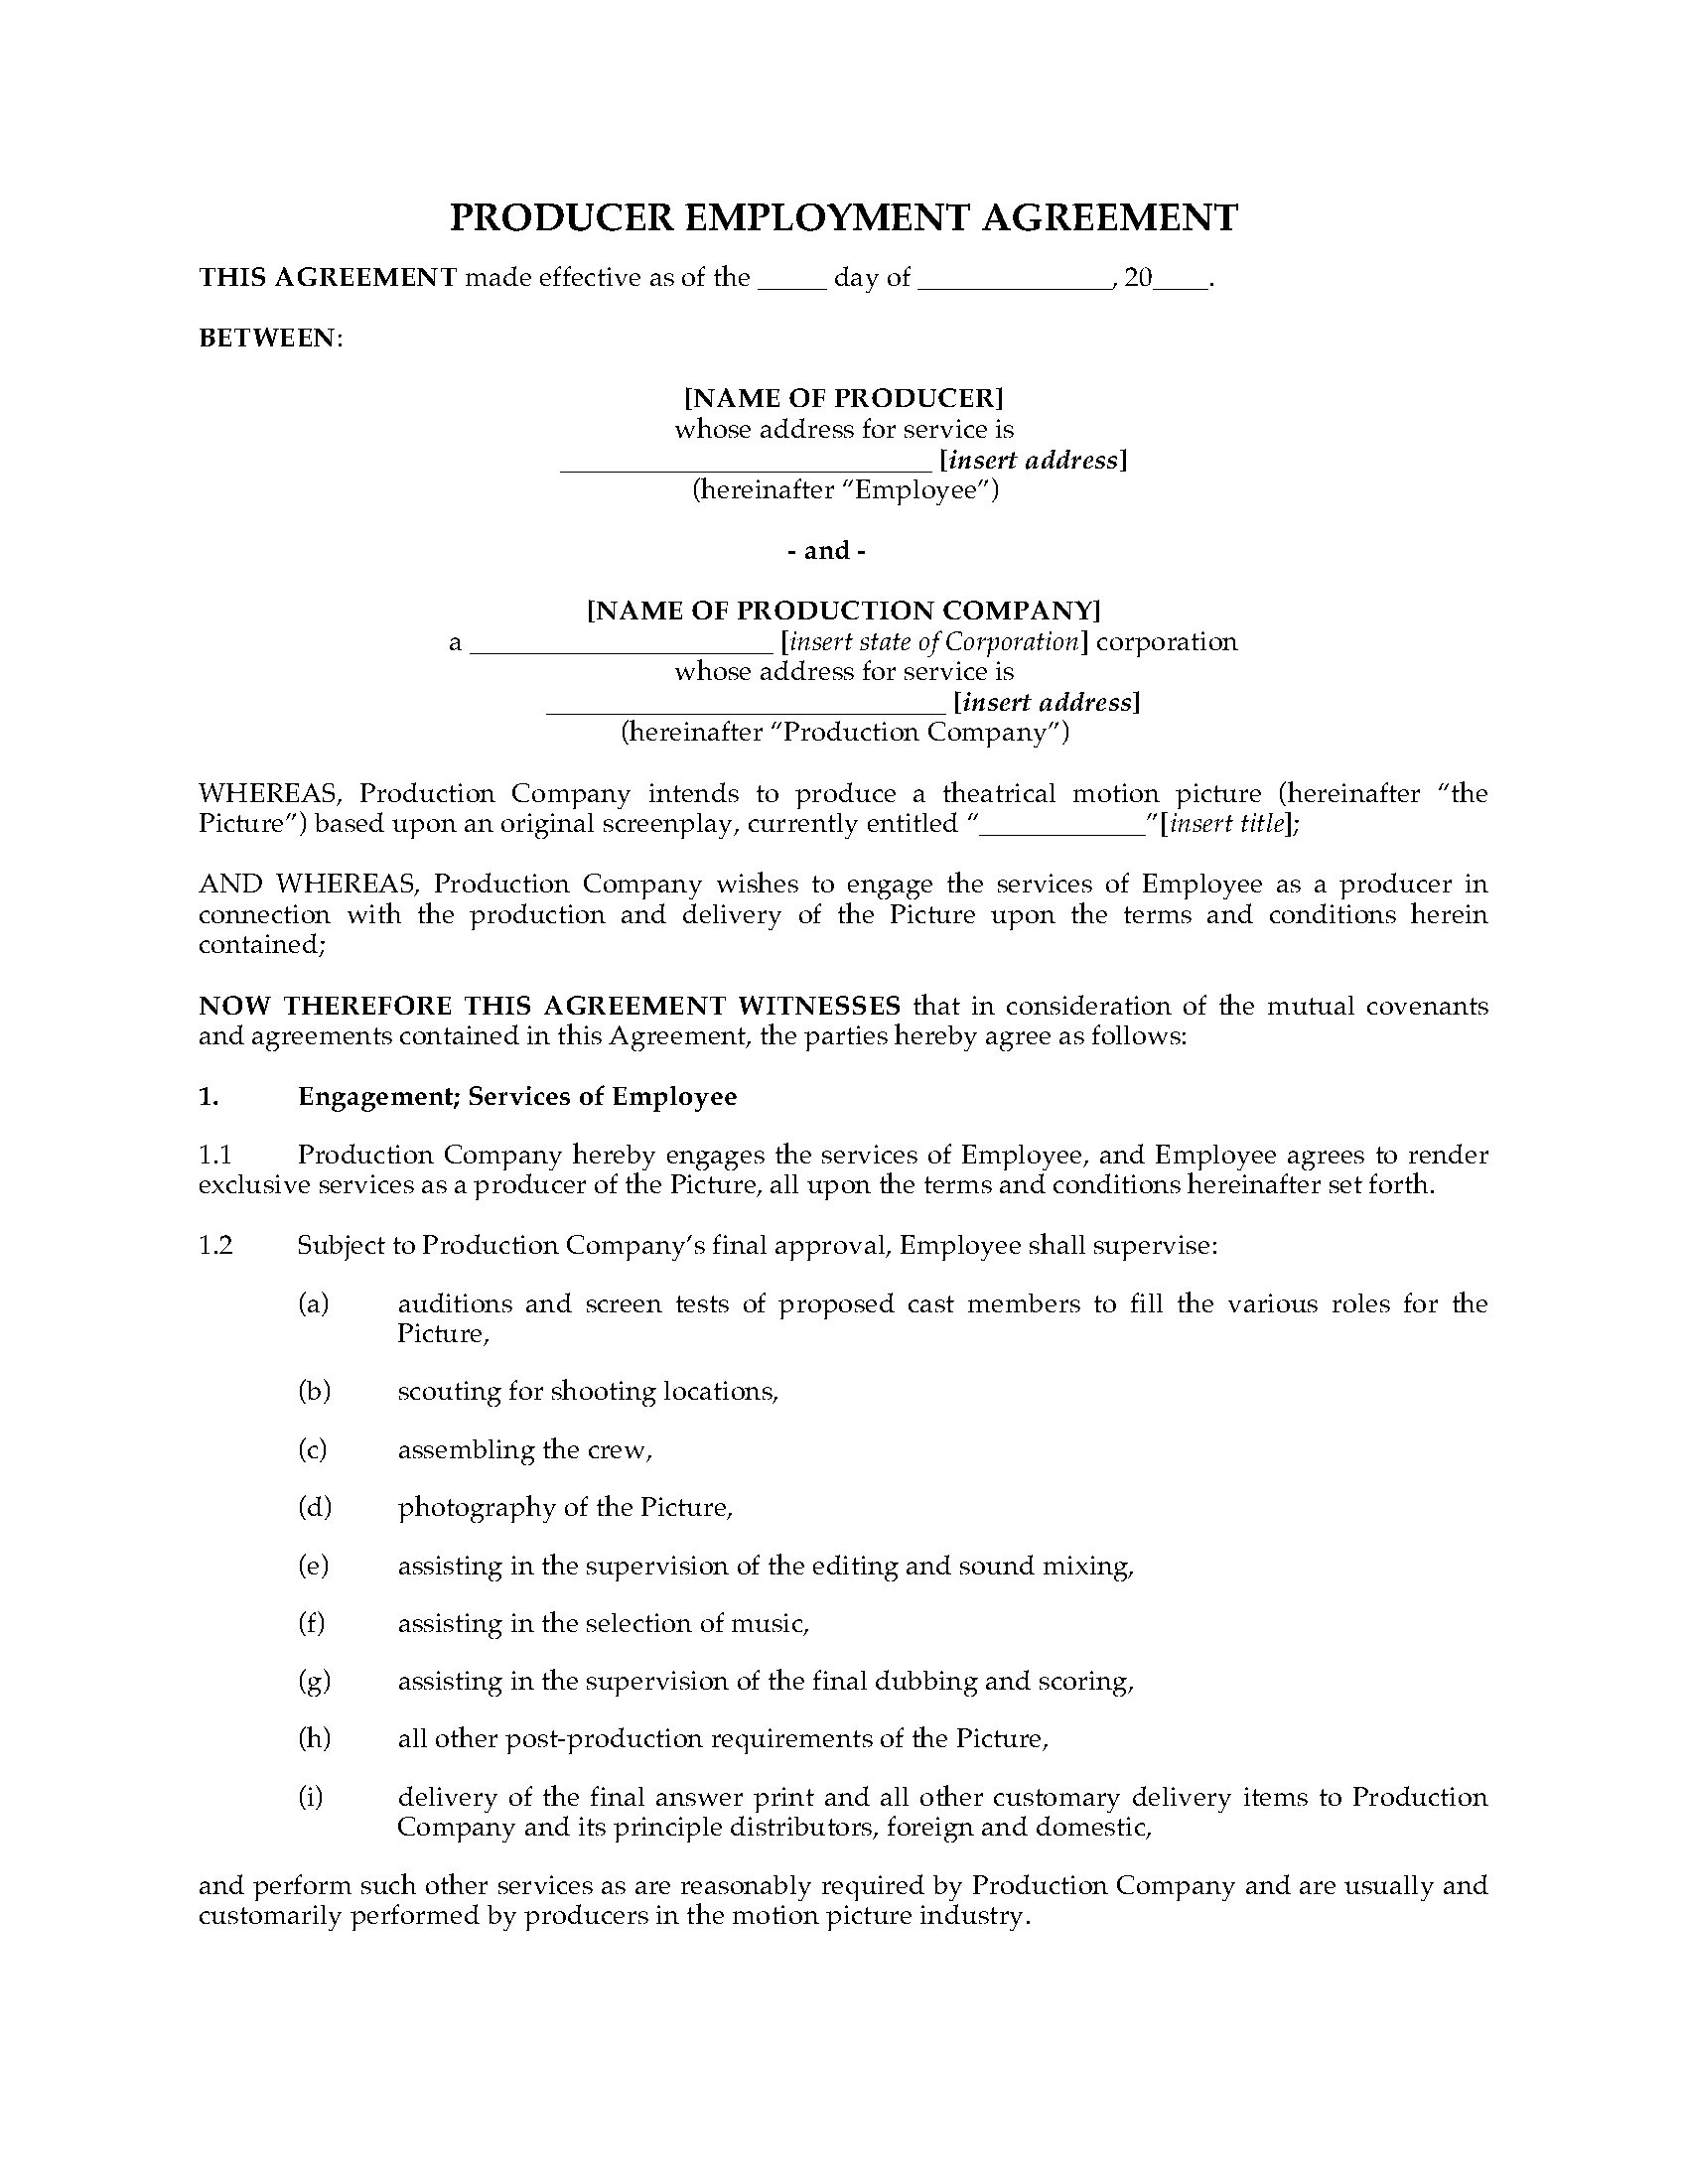 film producer employment contract